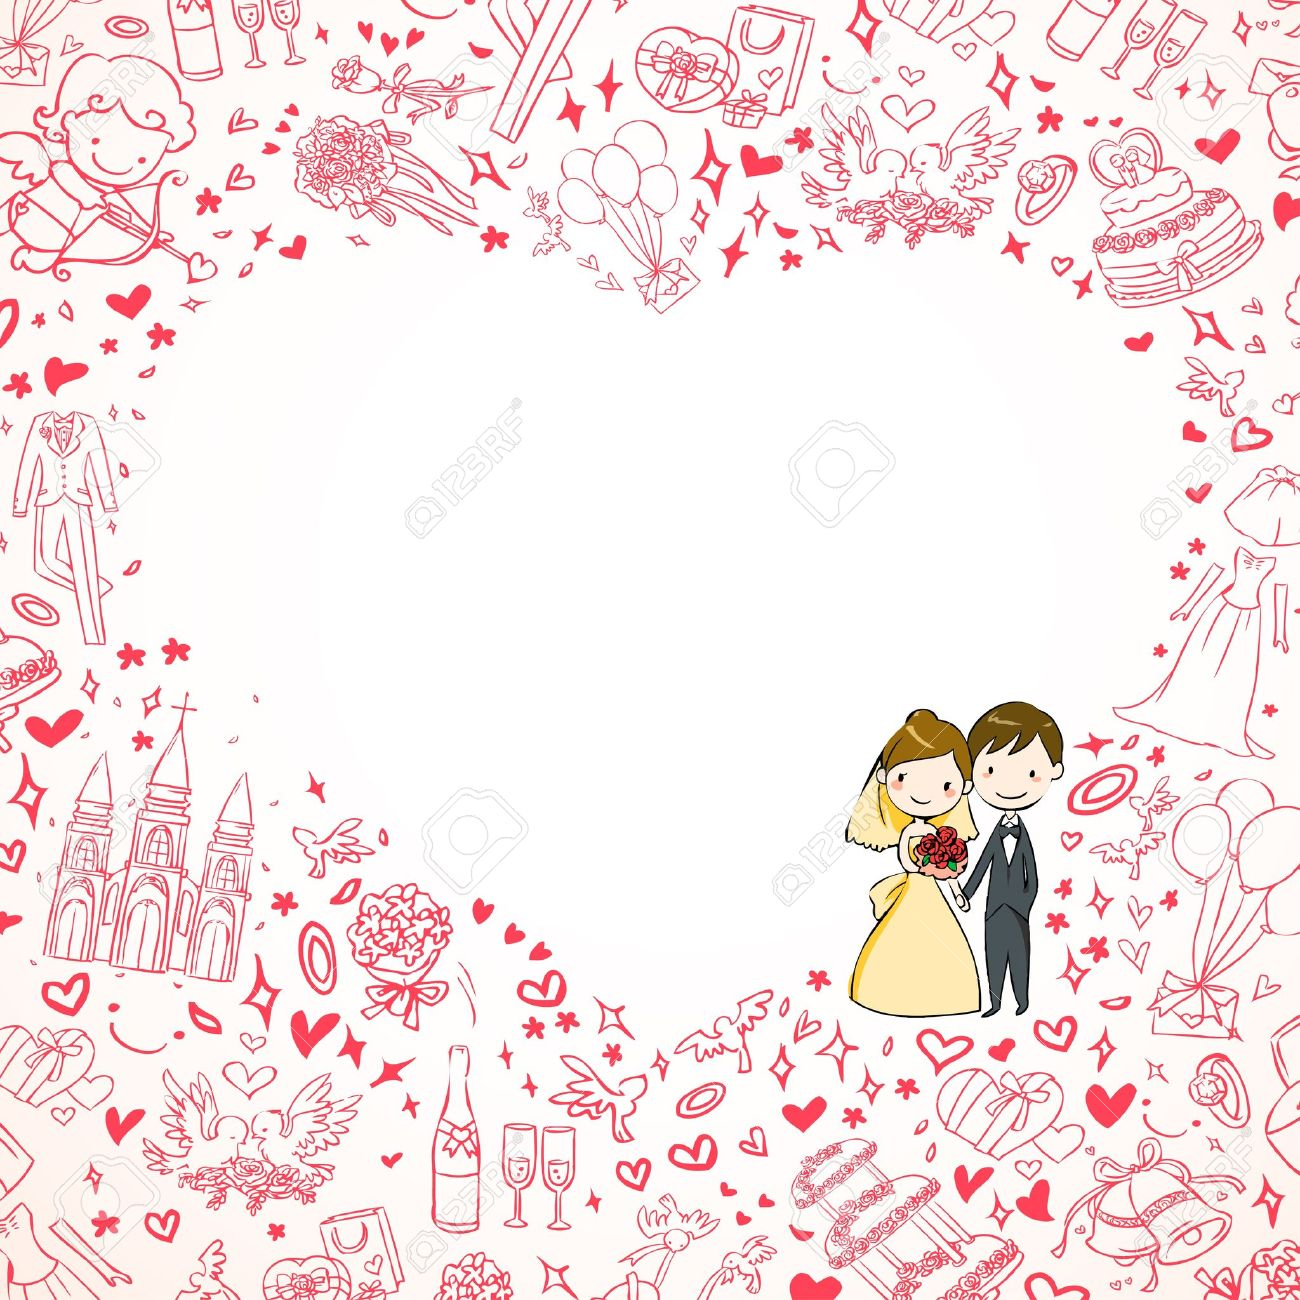 Wedding Invitation Royalty Free Cliparts, Vectors, And Stock ...